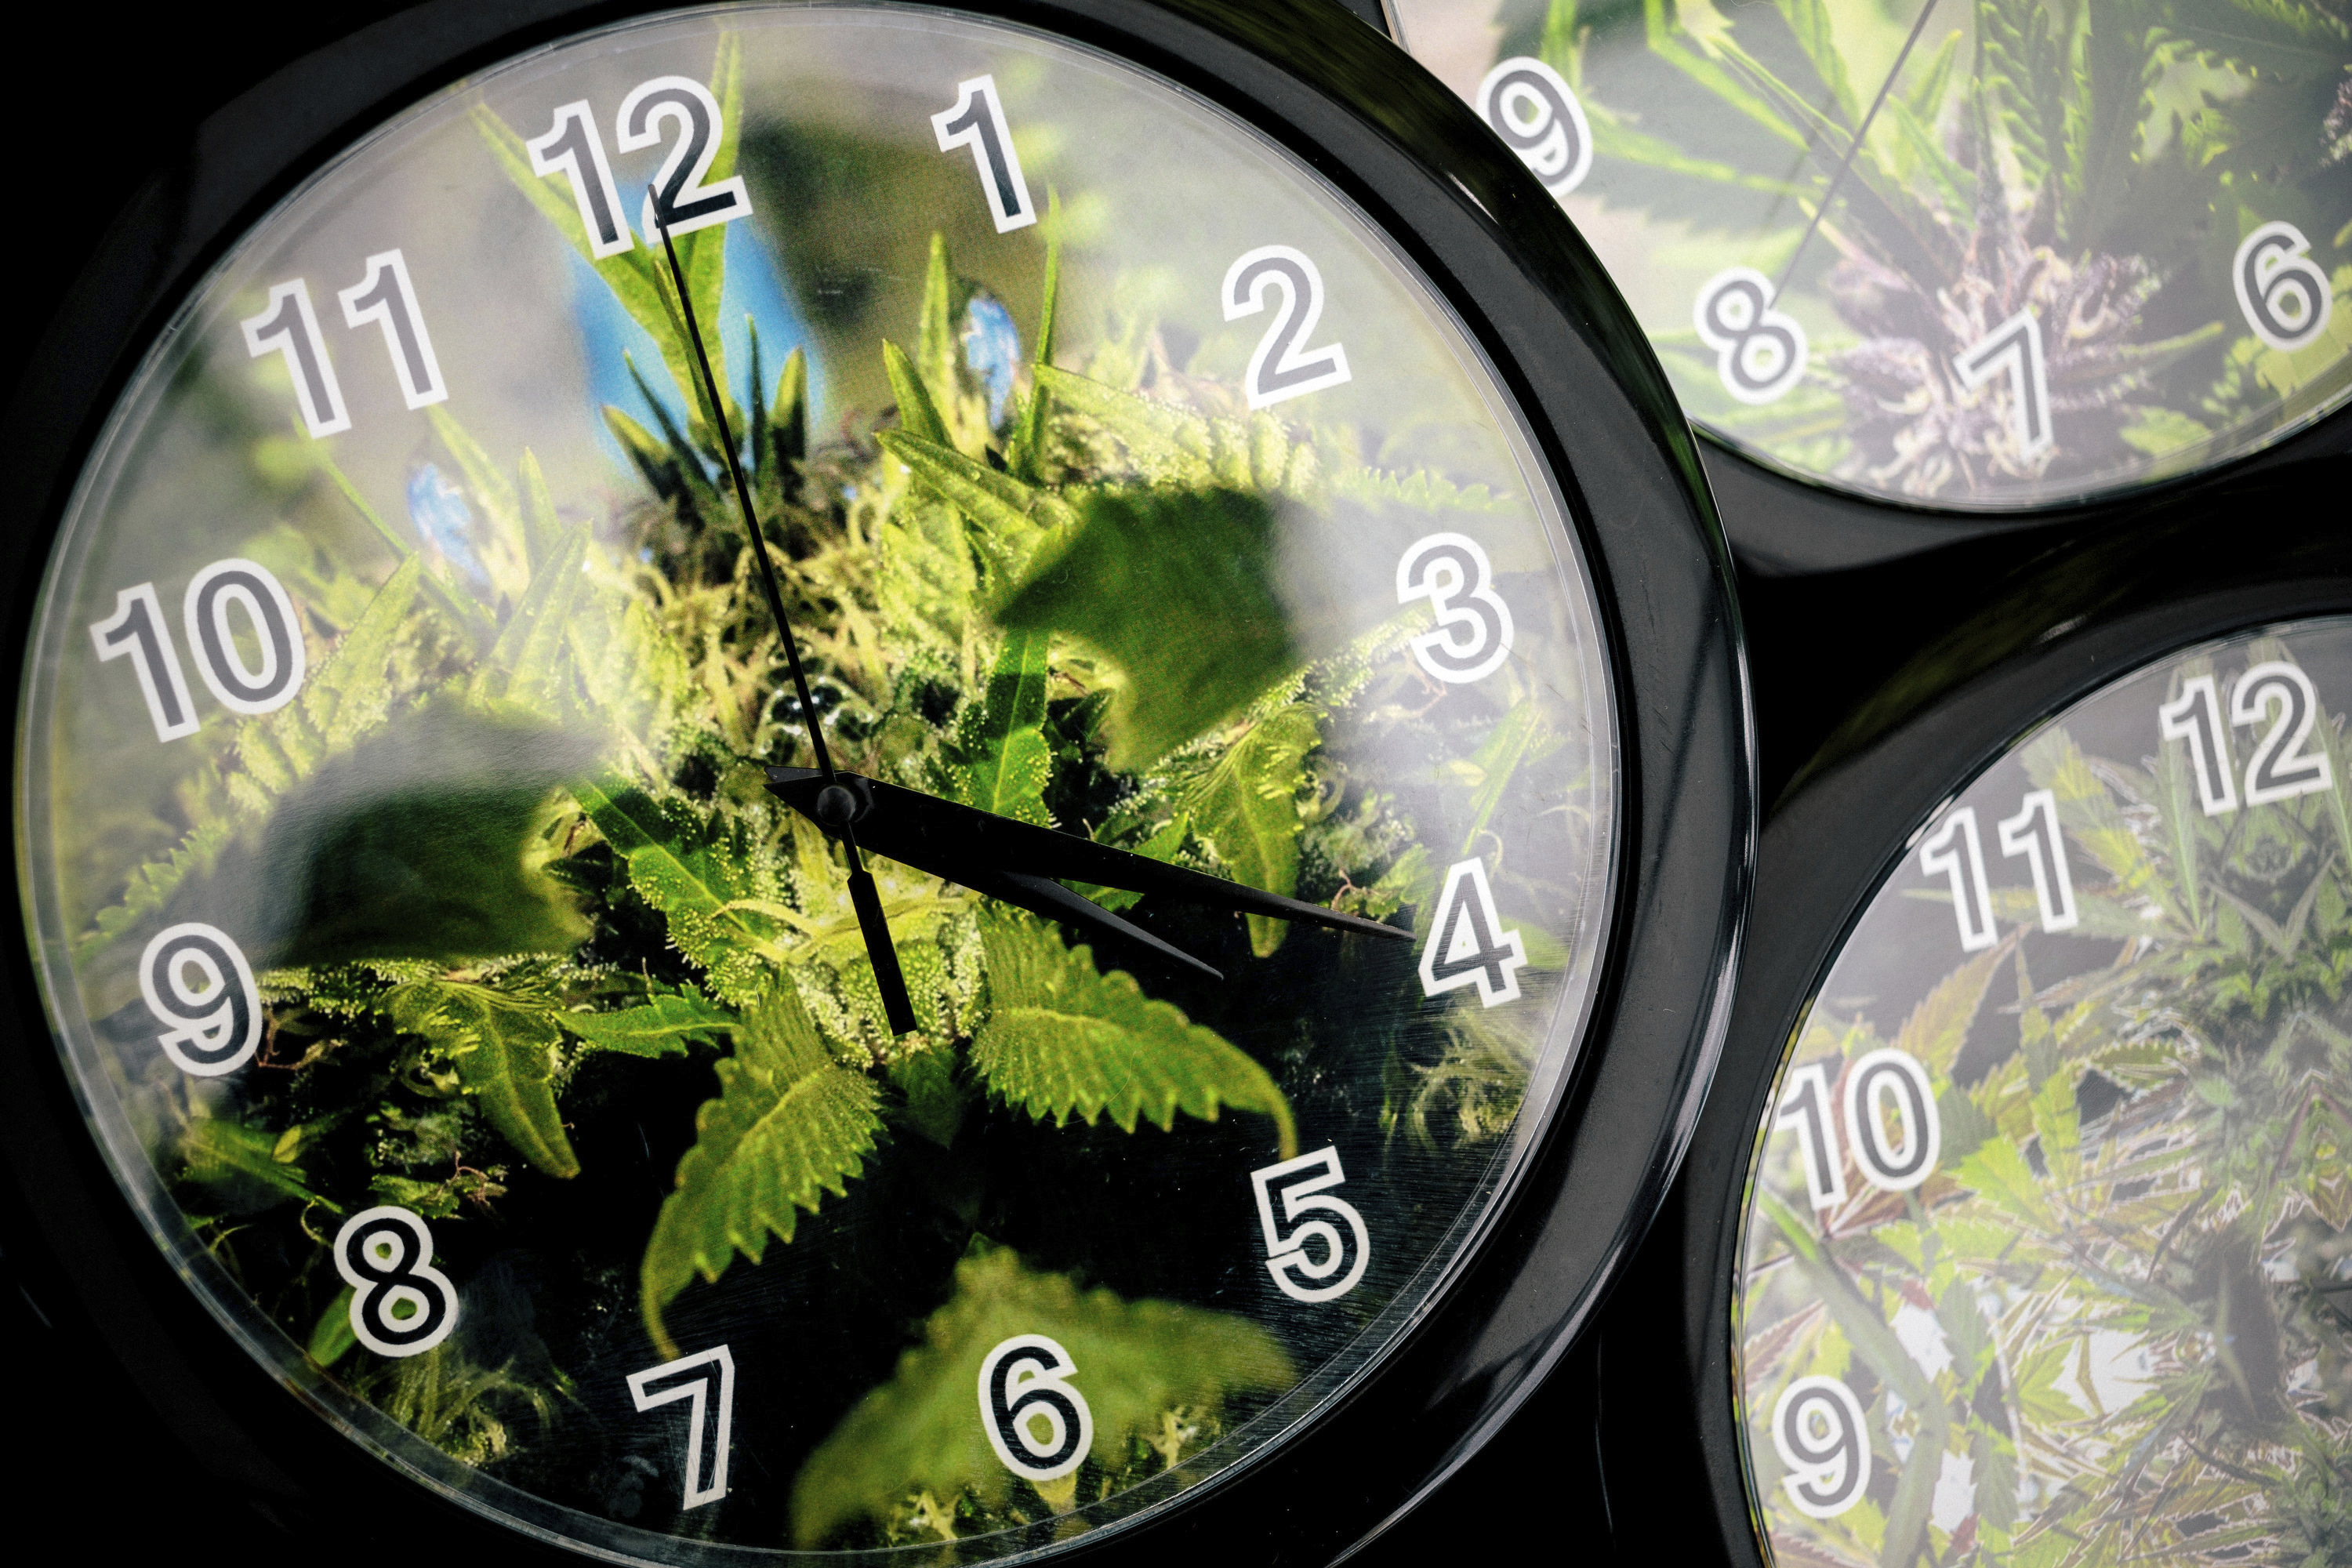 FILE - In this Aug. 15, 2014 file photo, set to the symbolic 4:20 time, weed patterns adorn clocks up for sale on the first of three days of Hempfest, Seattle's annual gathering to advocate the decriminalization of marijuana at Myrtle Edwards Park on the waterfront in Seattle. Thursday, April 20, 2017, marks marijuana culture's high holiday, 4/20, when college students gather - at 4:20 p.m. - in clouds of smoke on campus quads and pot shops in legal weed states thank their customers with discounts. (Jordan Stead/seattlepi.com via AP, File)